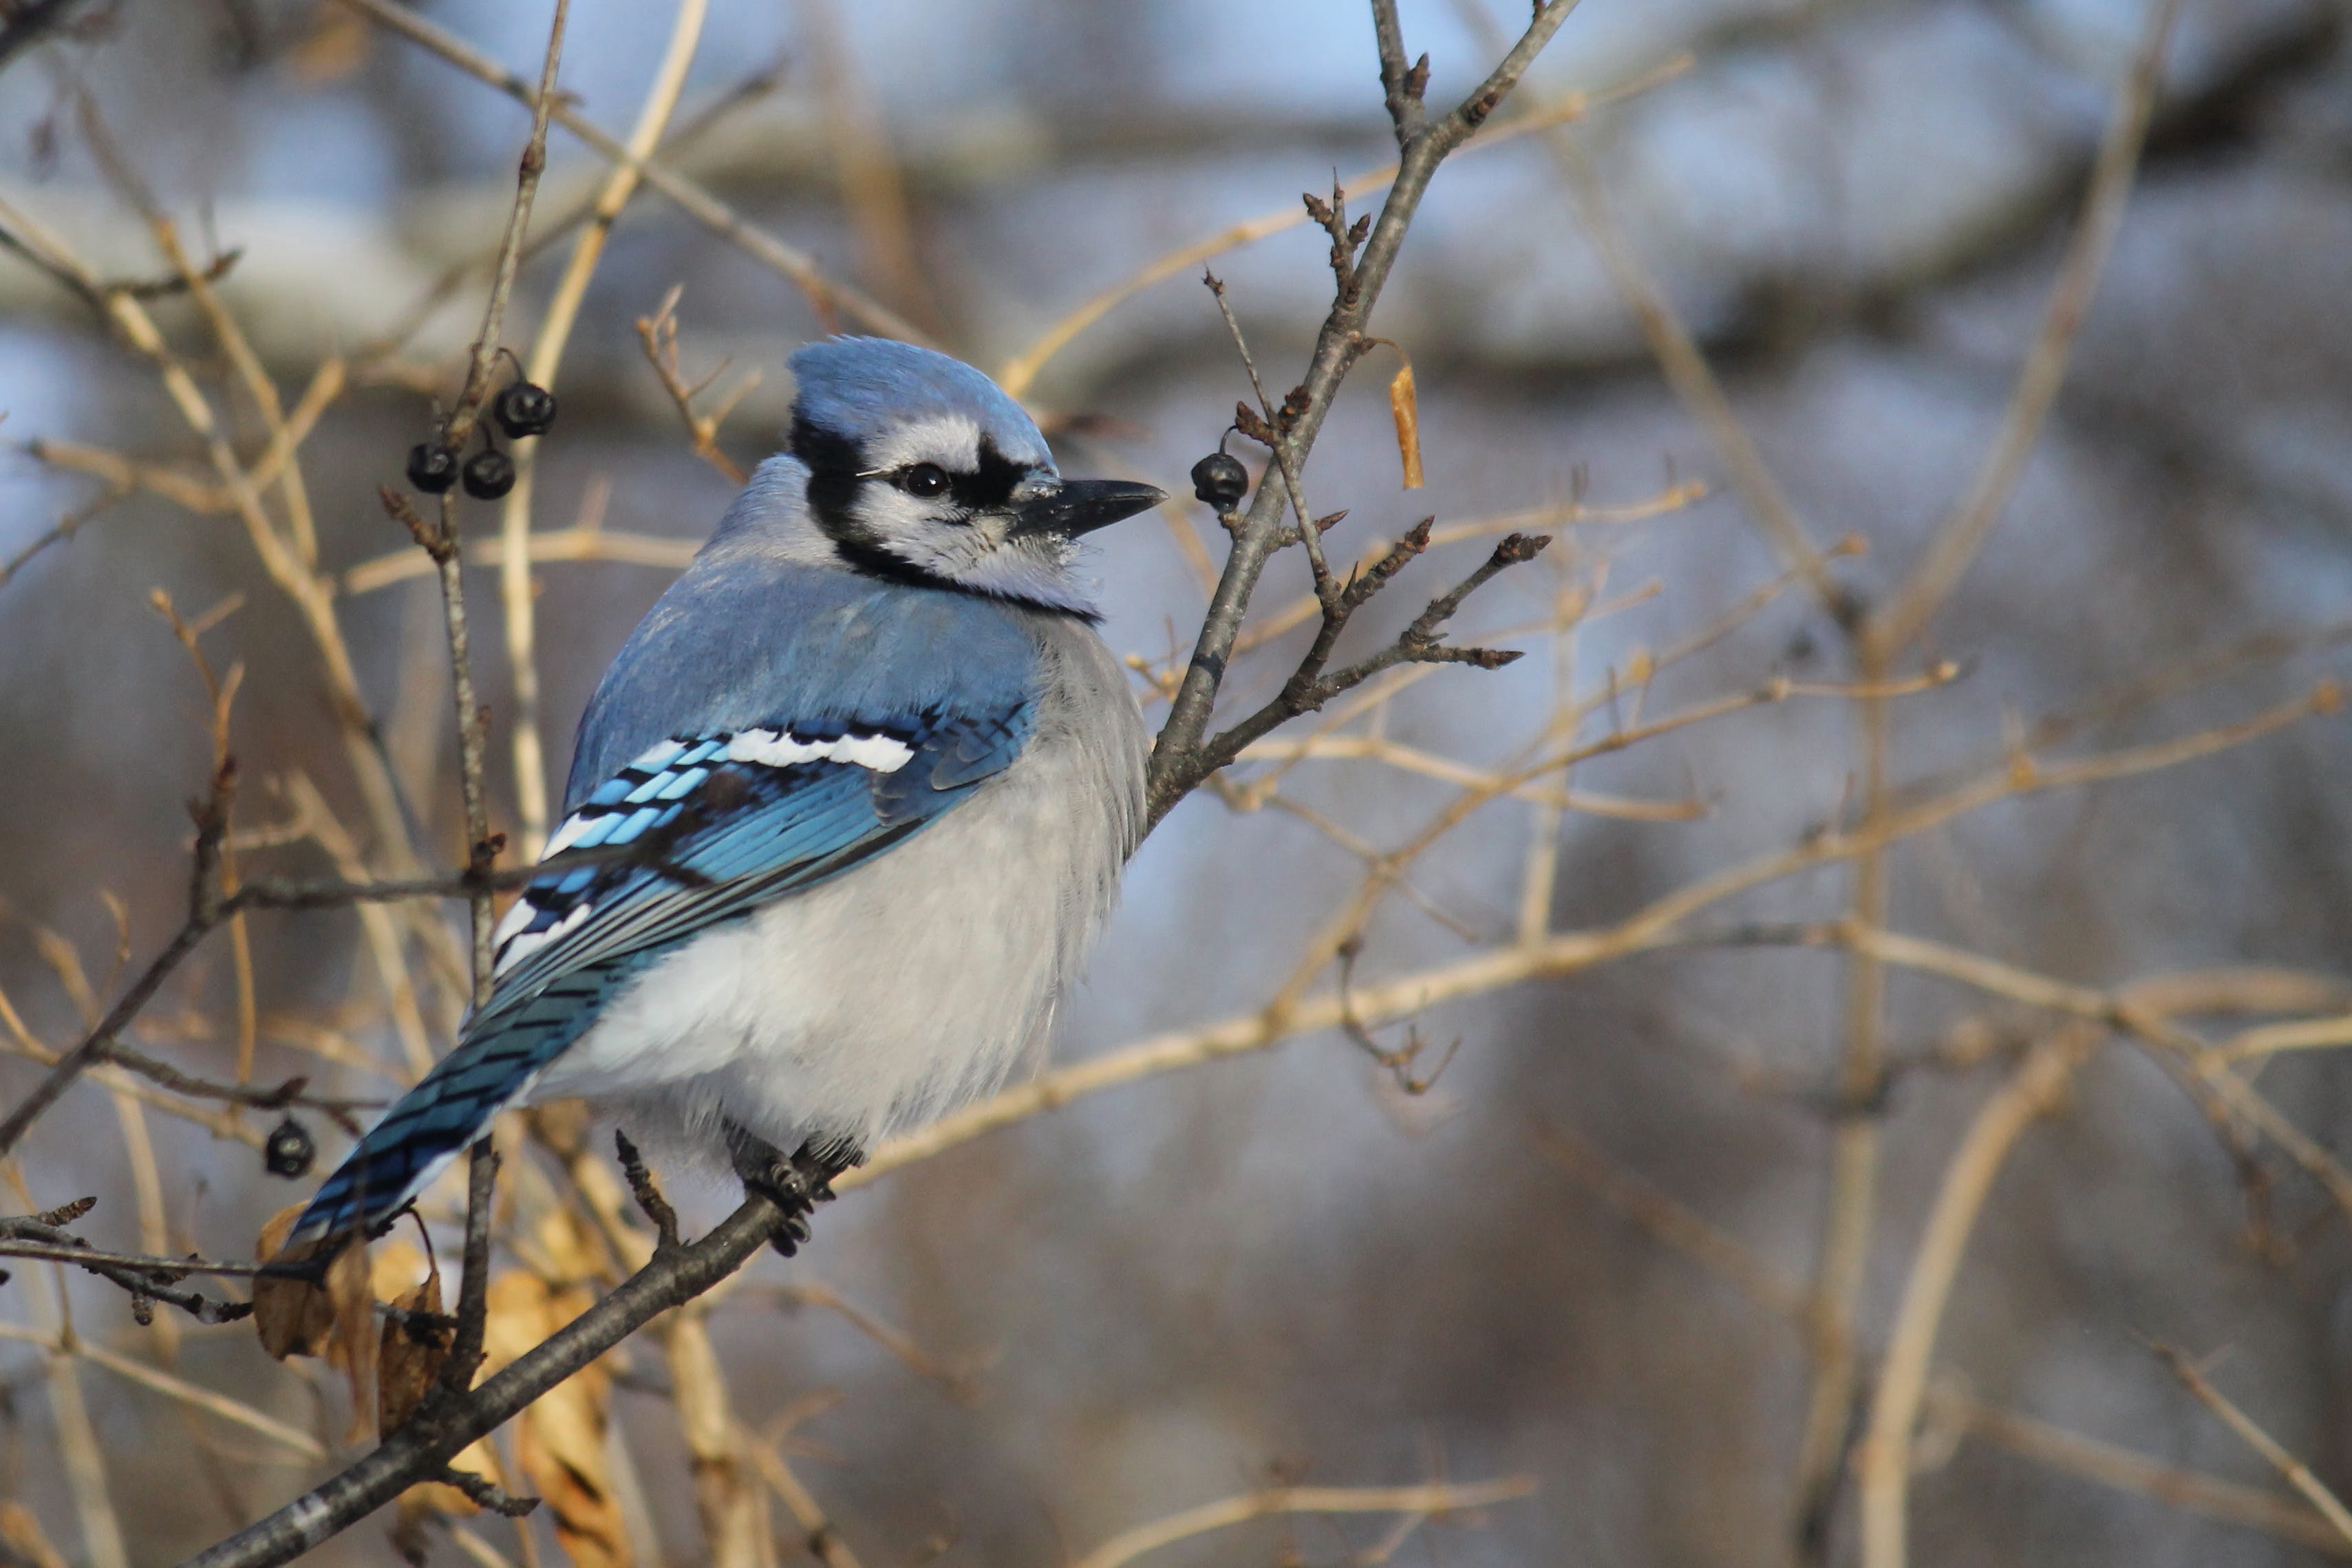 Free stock photo of birds, blue jay, nature photography